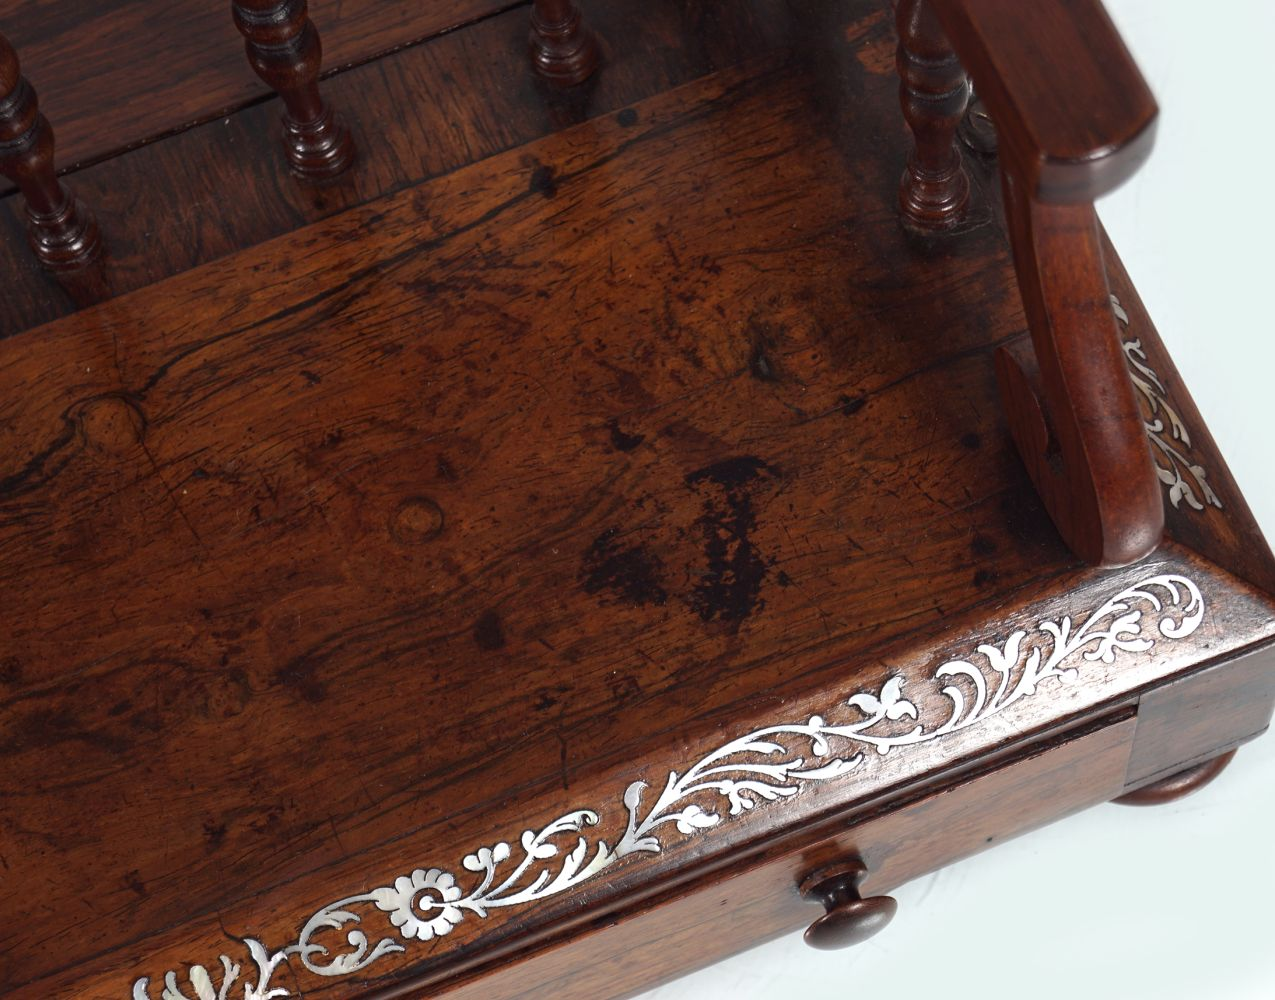 REGENCY ROSEWOOD AND MOTHER O'PEARL BOOK STAND - Image 3 of 3